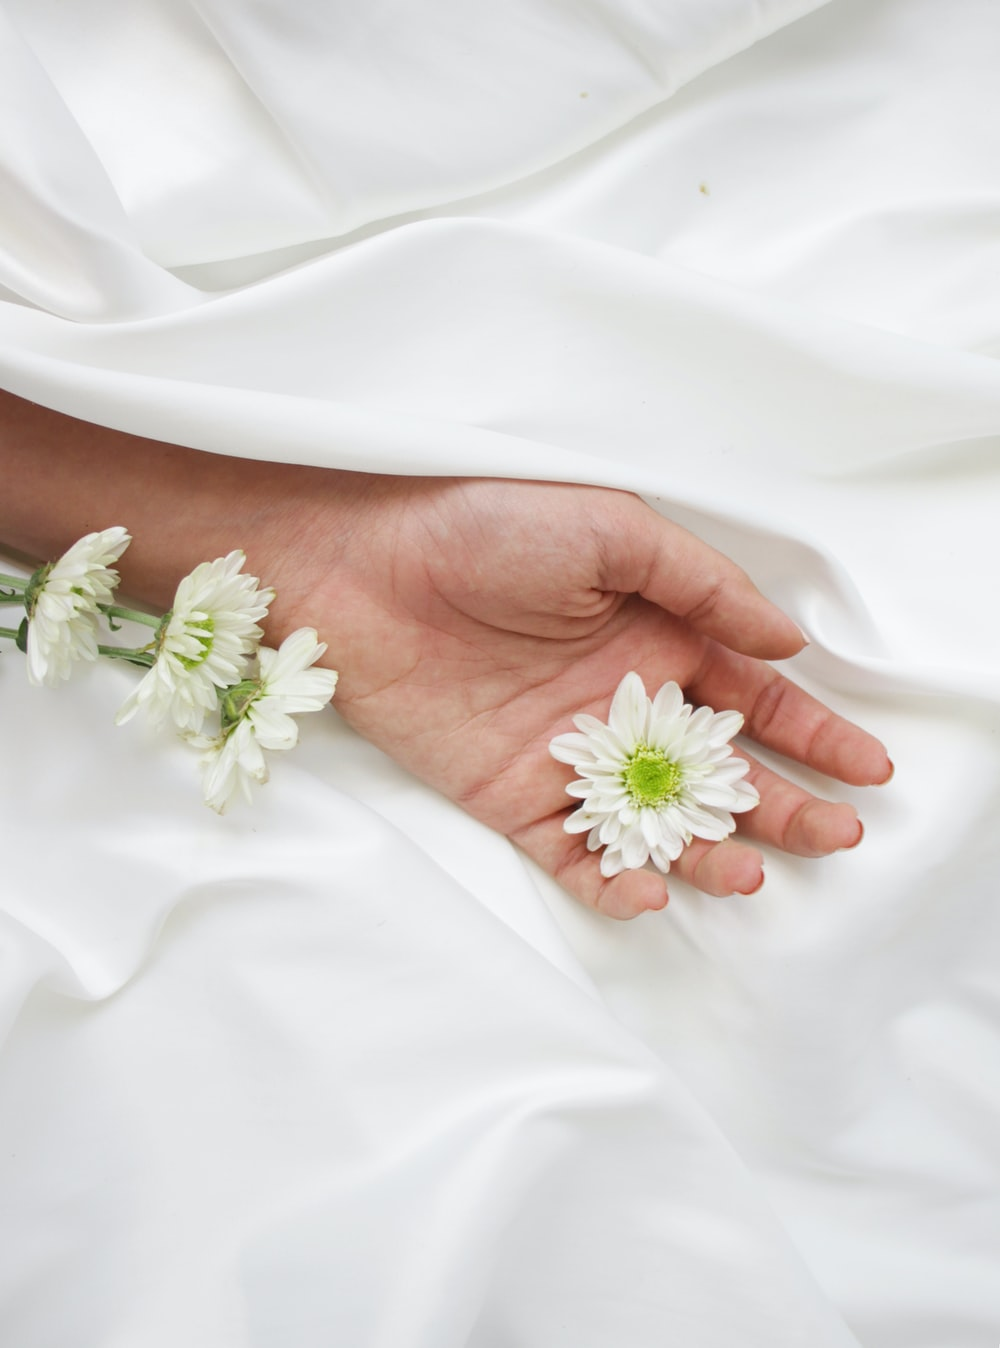 white flower on persons hand